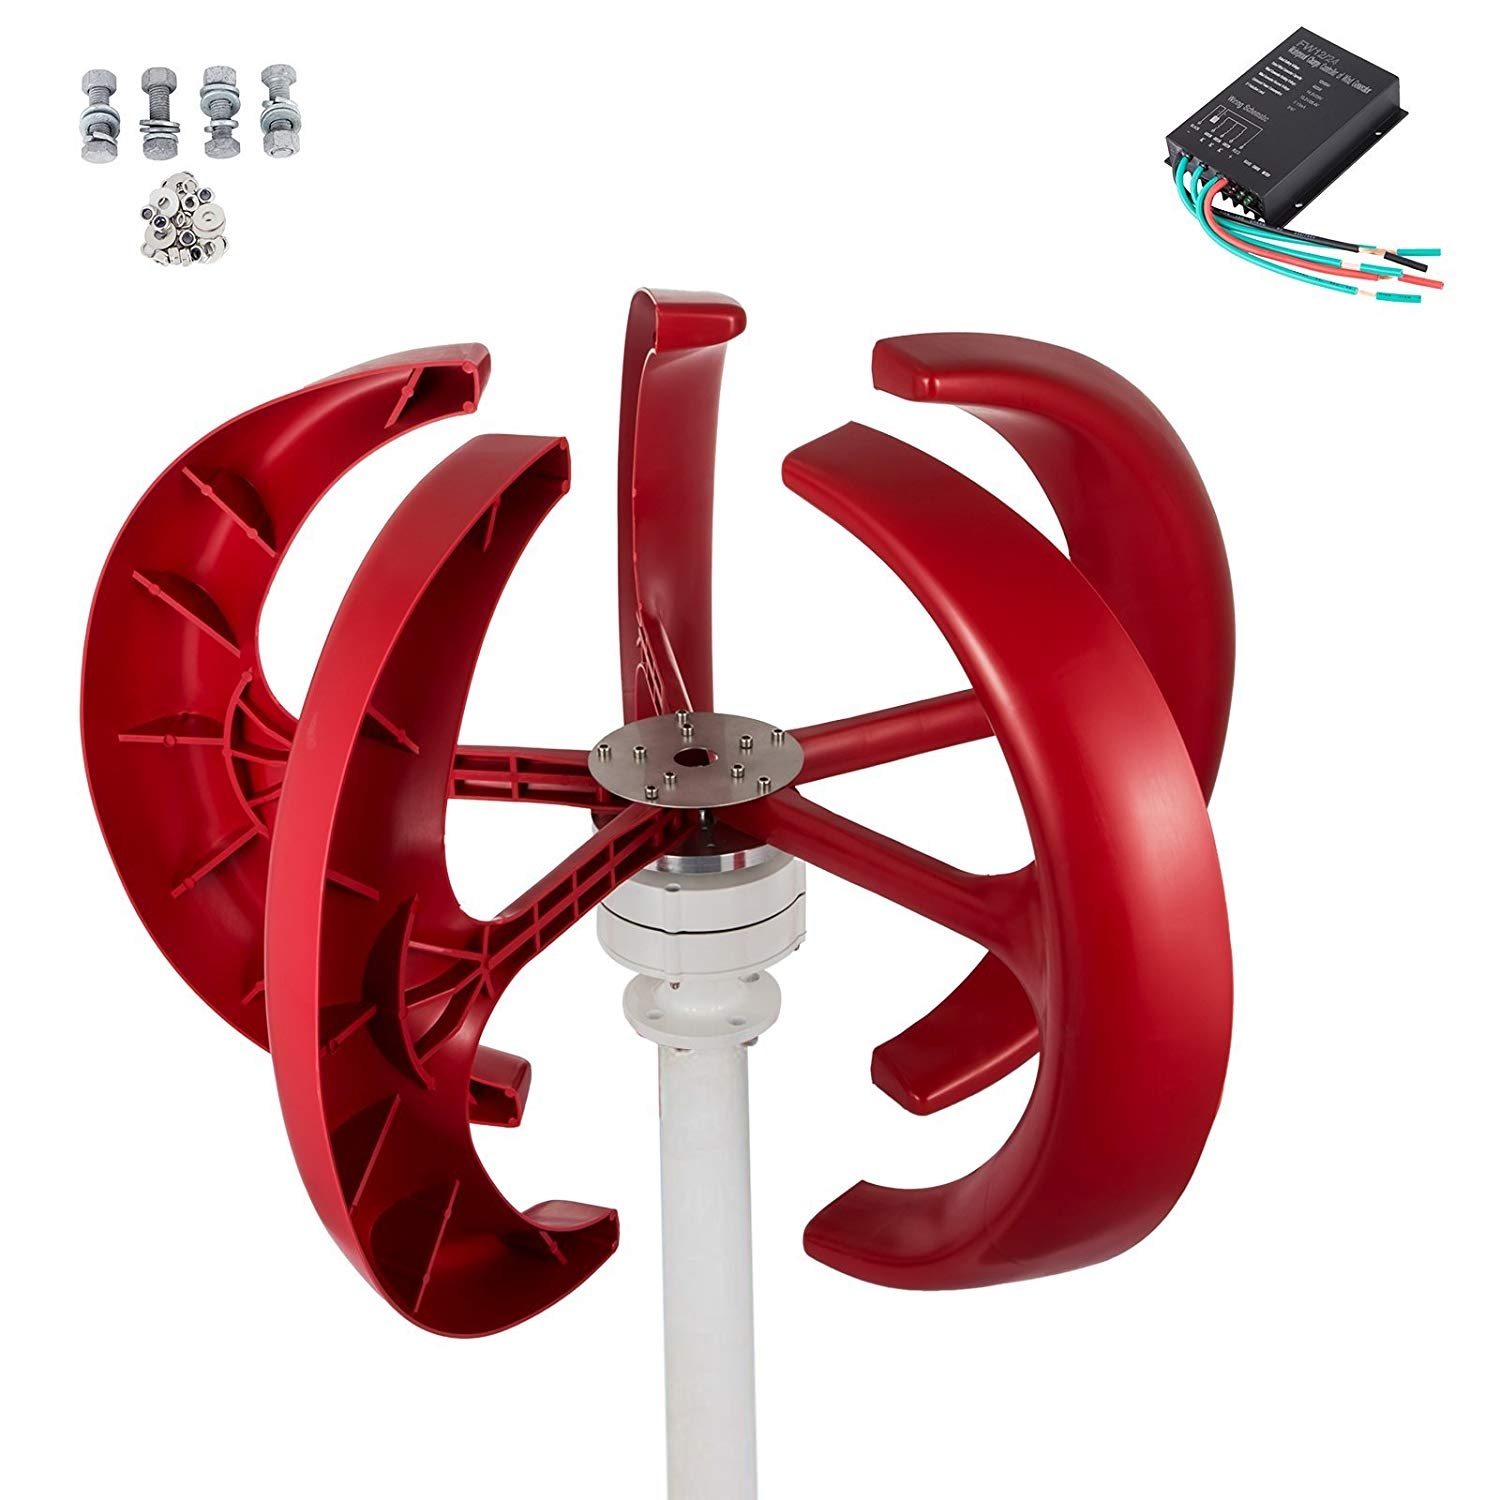 Mophorn Wind Turbine 400W 12V Red Lantern Vertical Wind Generator 5 Leaves Wind Turbine Kit with Controller No Pole (400W 12V Red)